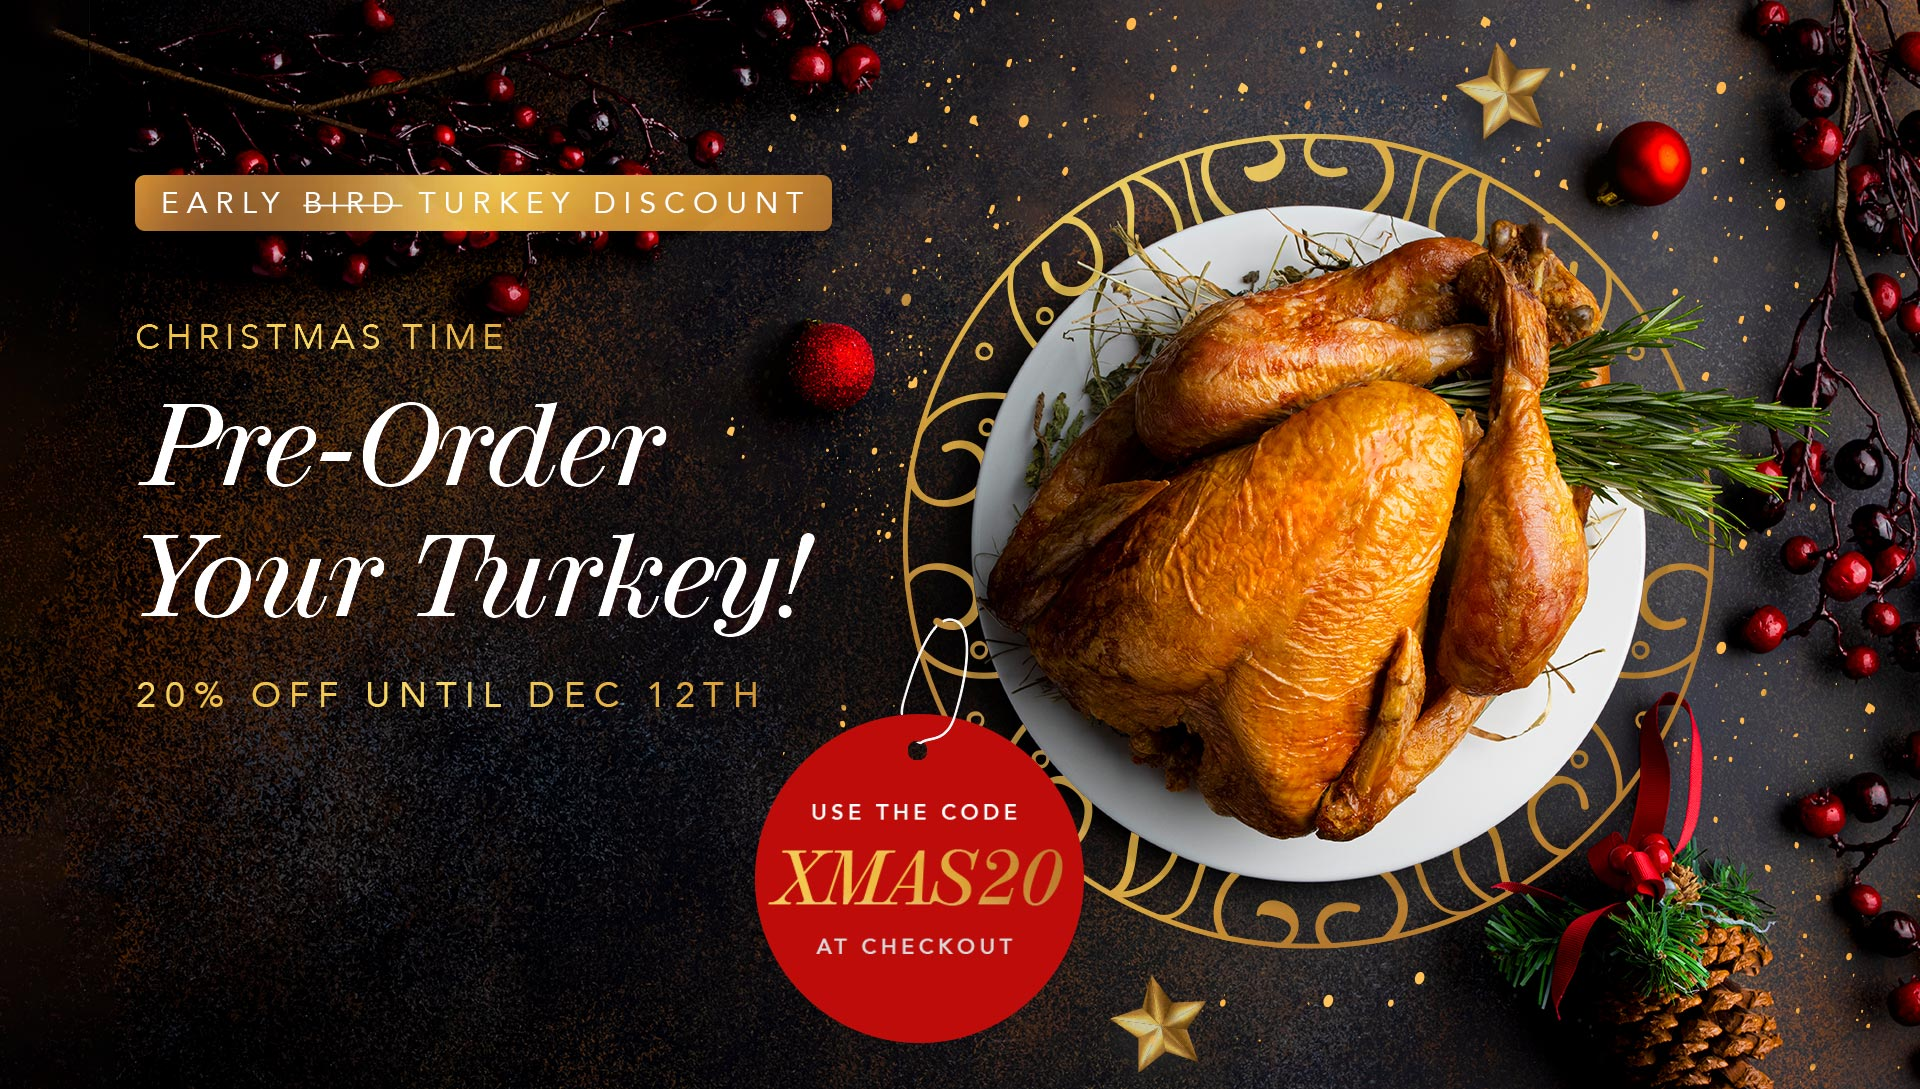 Early Turkey Discount! Pre-Order with 20% off until Dec 12th